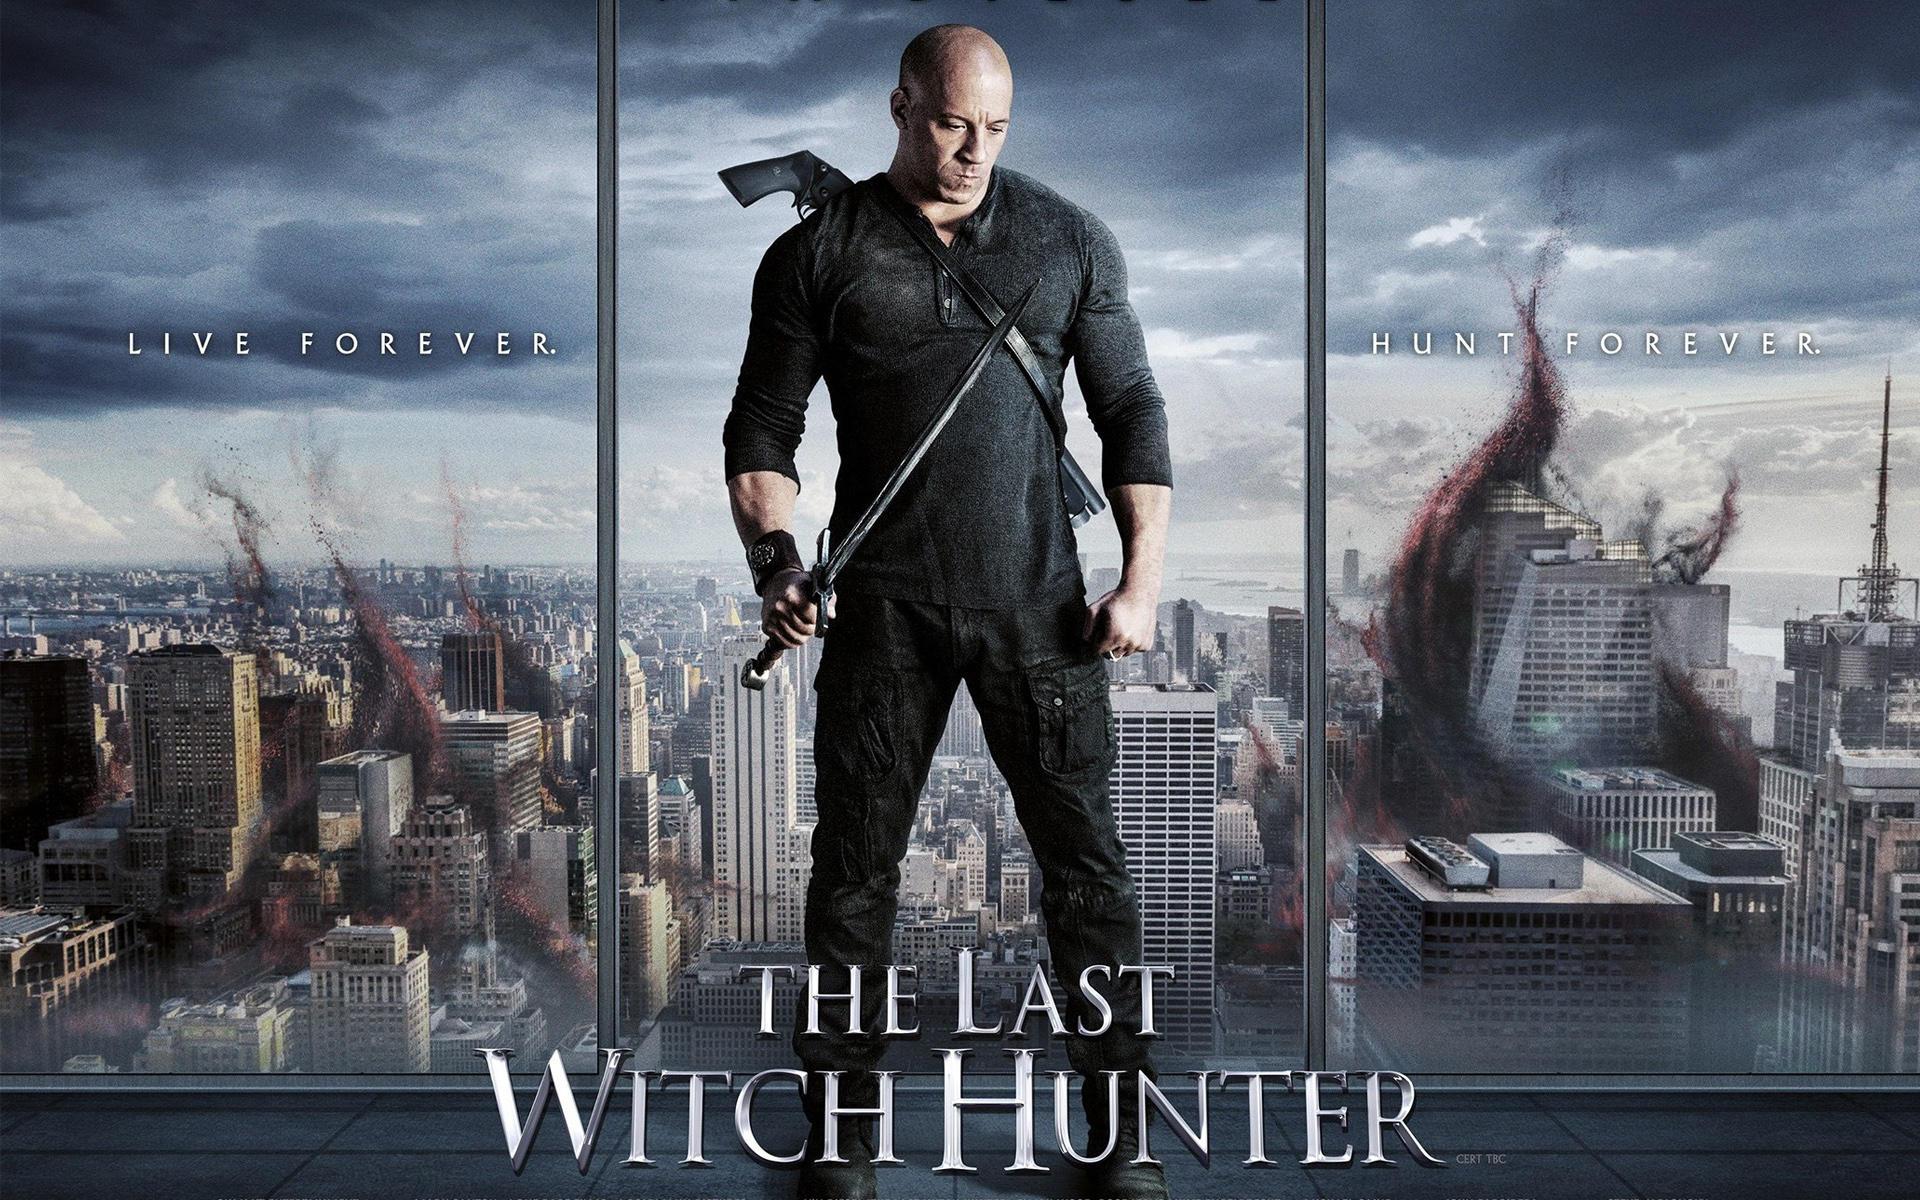 The Last Witch Hunter Vin Diesel wallpaper